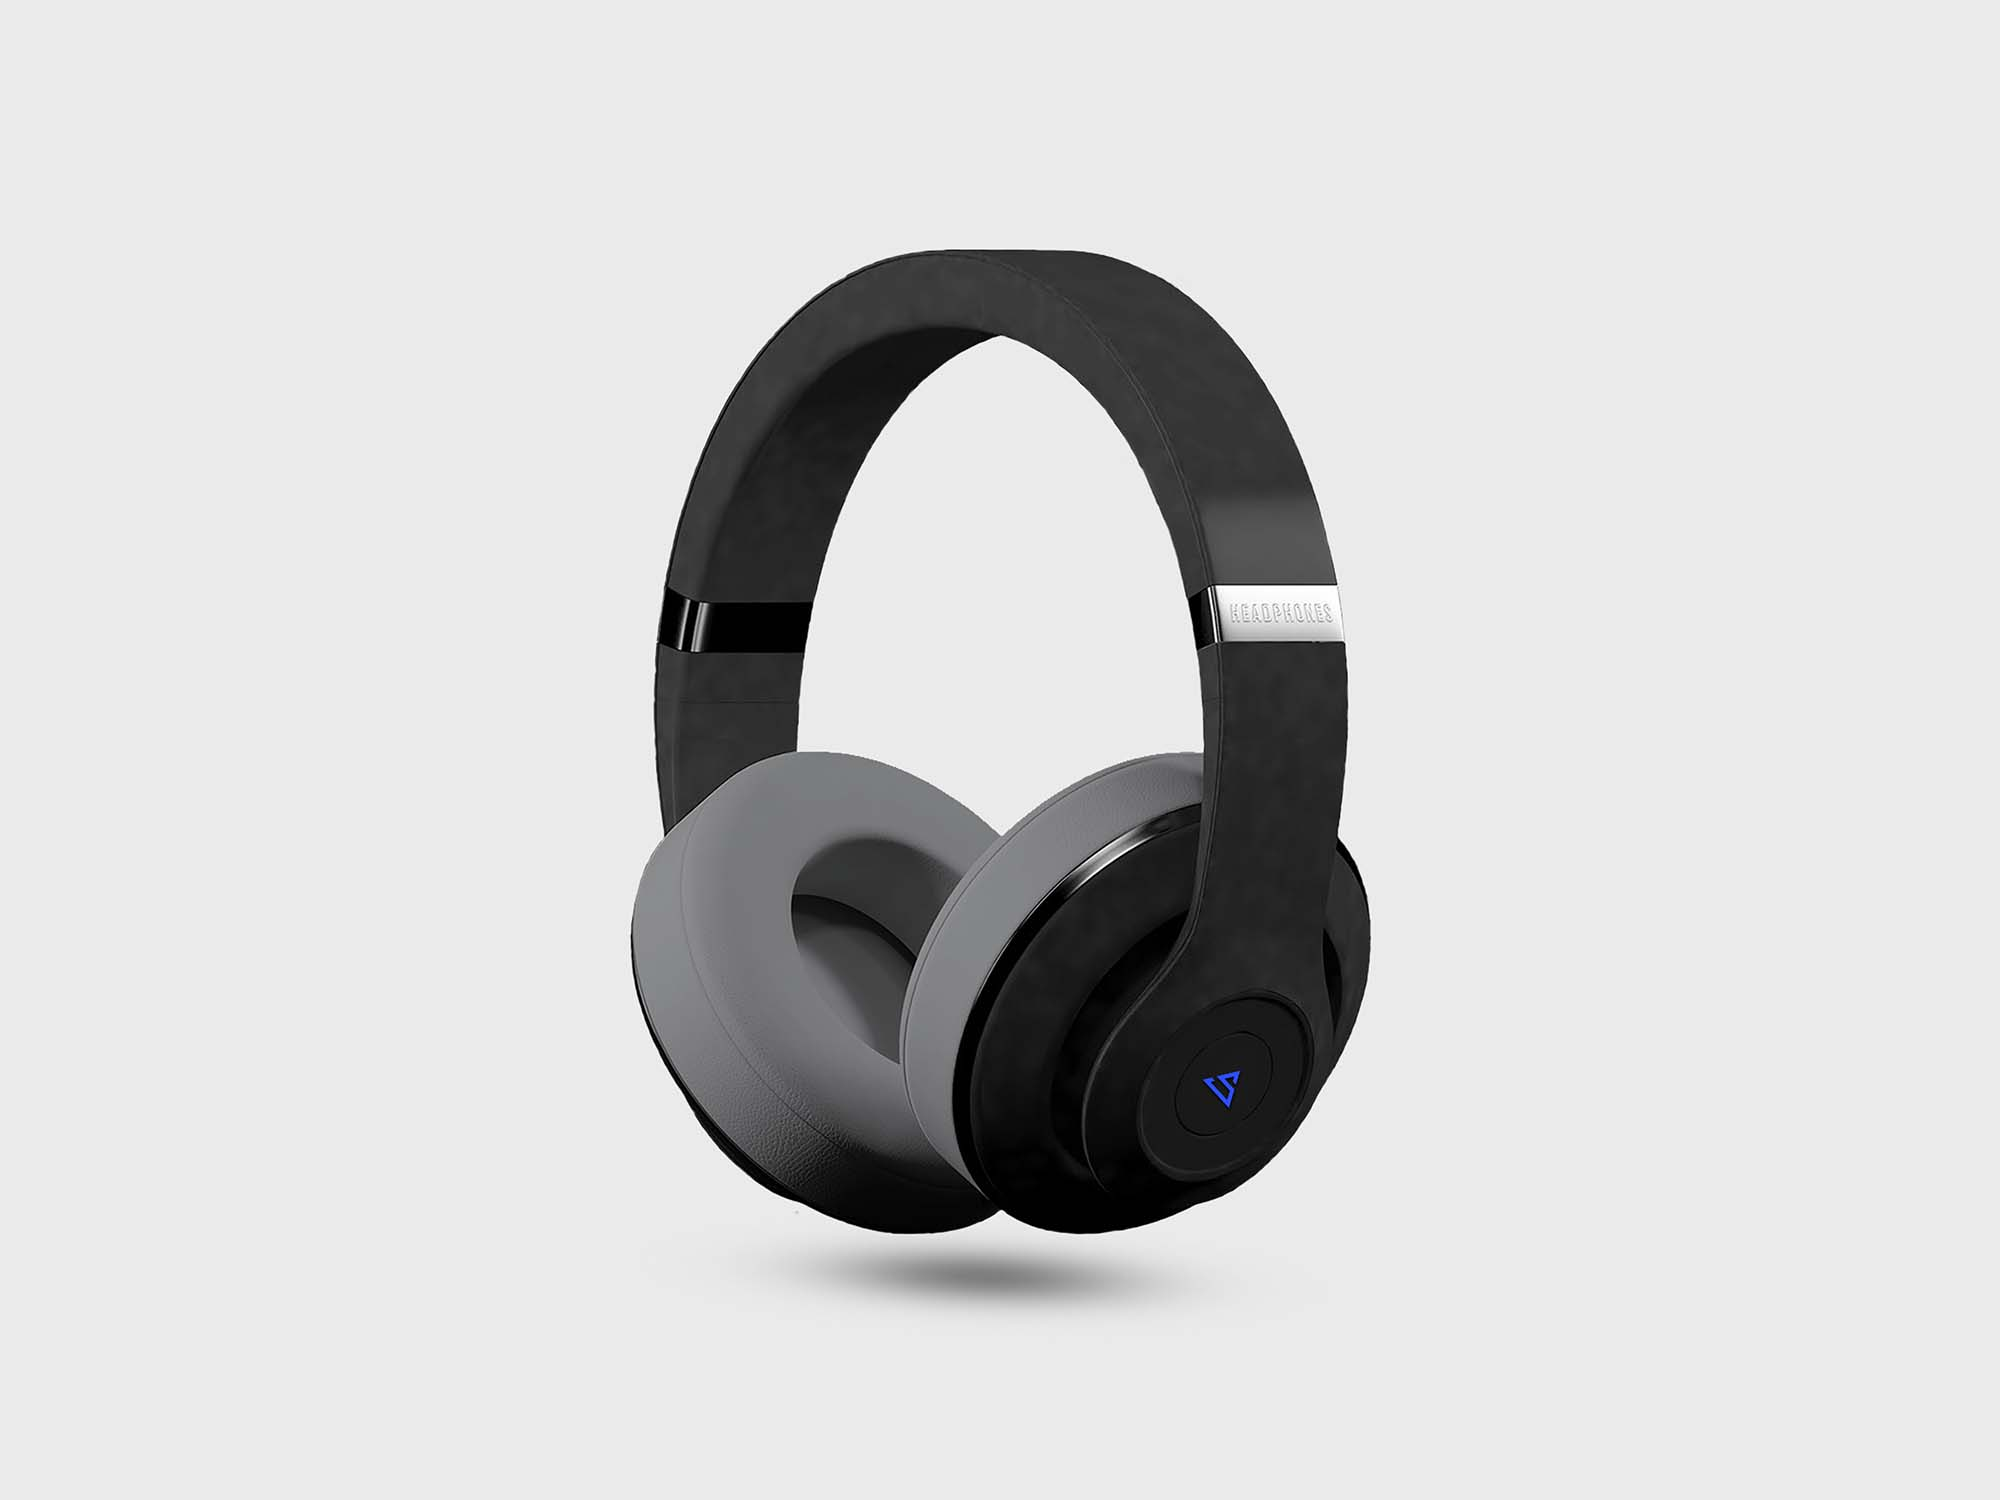 Headphone Mockup